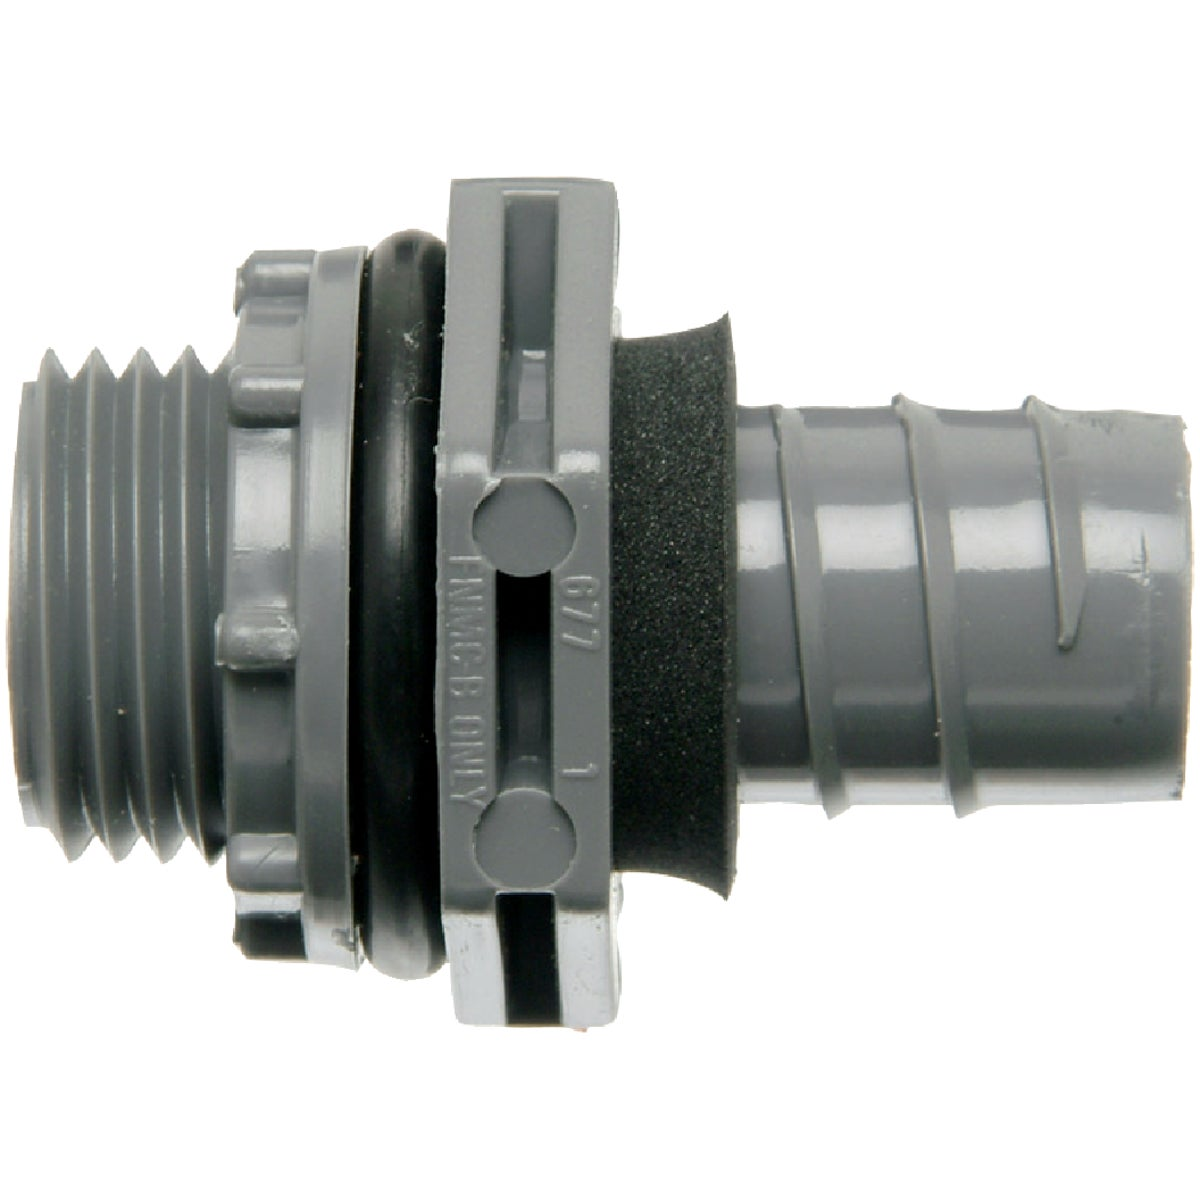 "1/2"" CONNECTOR - LN43DACTN by Thomas & Betts"